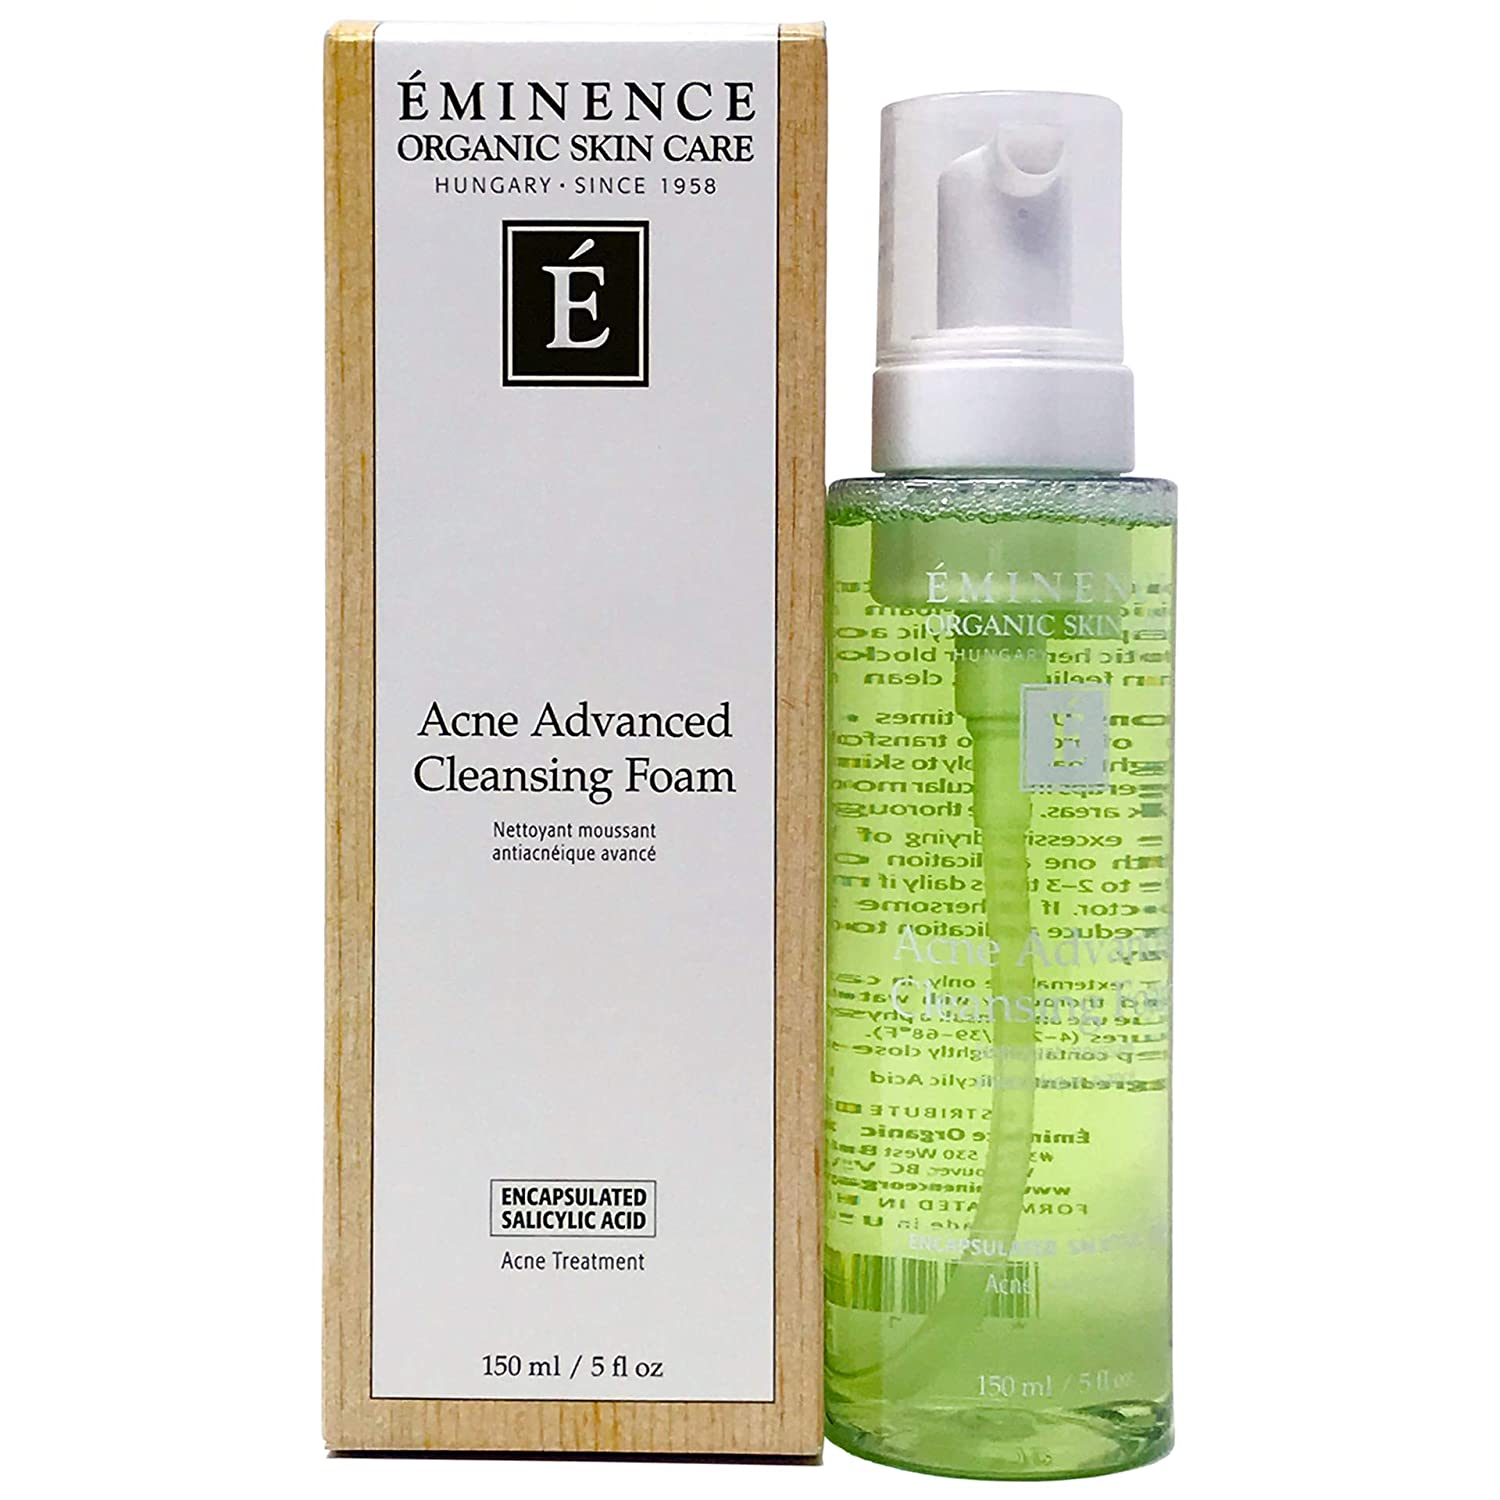 Eminence Organic Skincare Acne Advanced Cleansing Foam